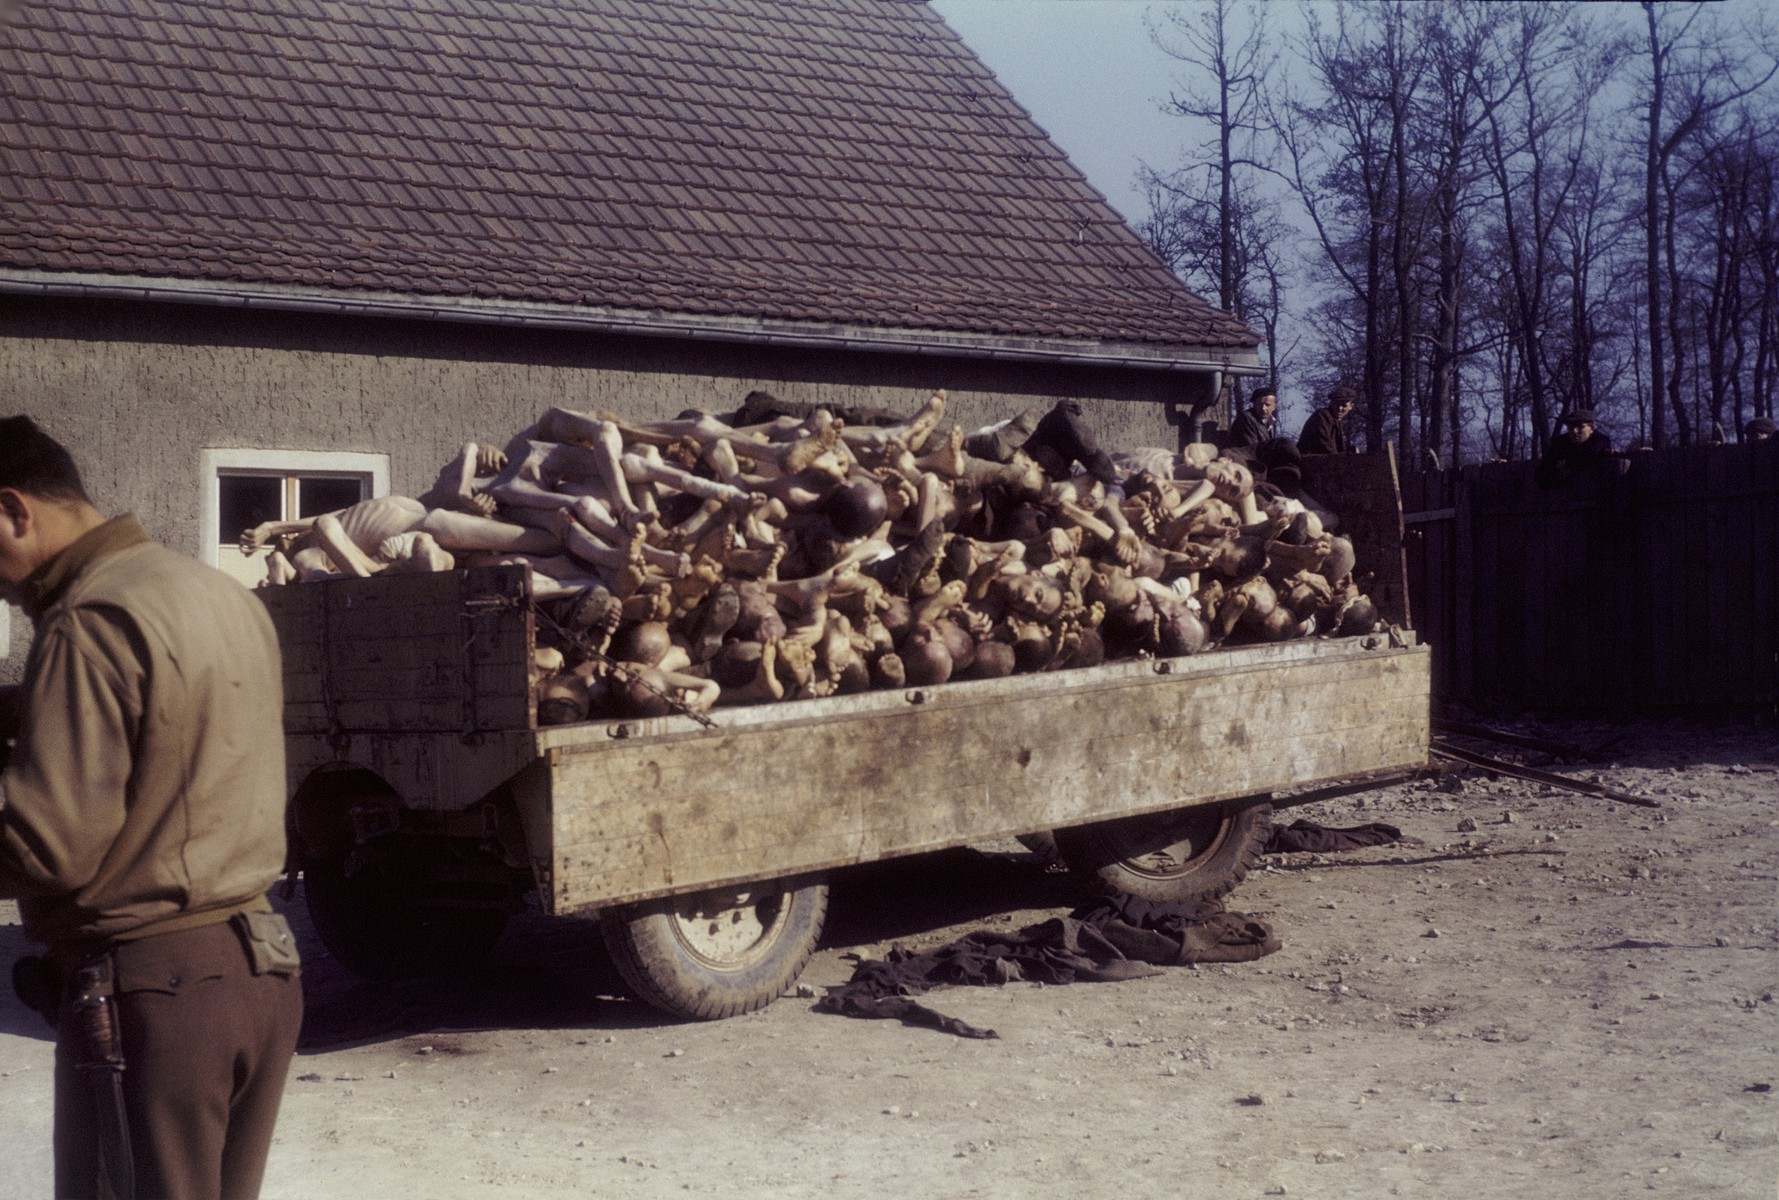 An American soldier stands near a wagon piled high with corpses outside the crematorium in the newly liberated Buchenwald concentration camp.